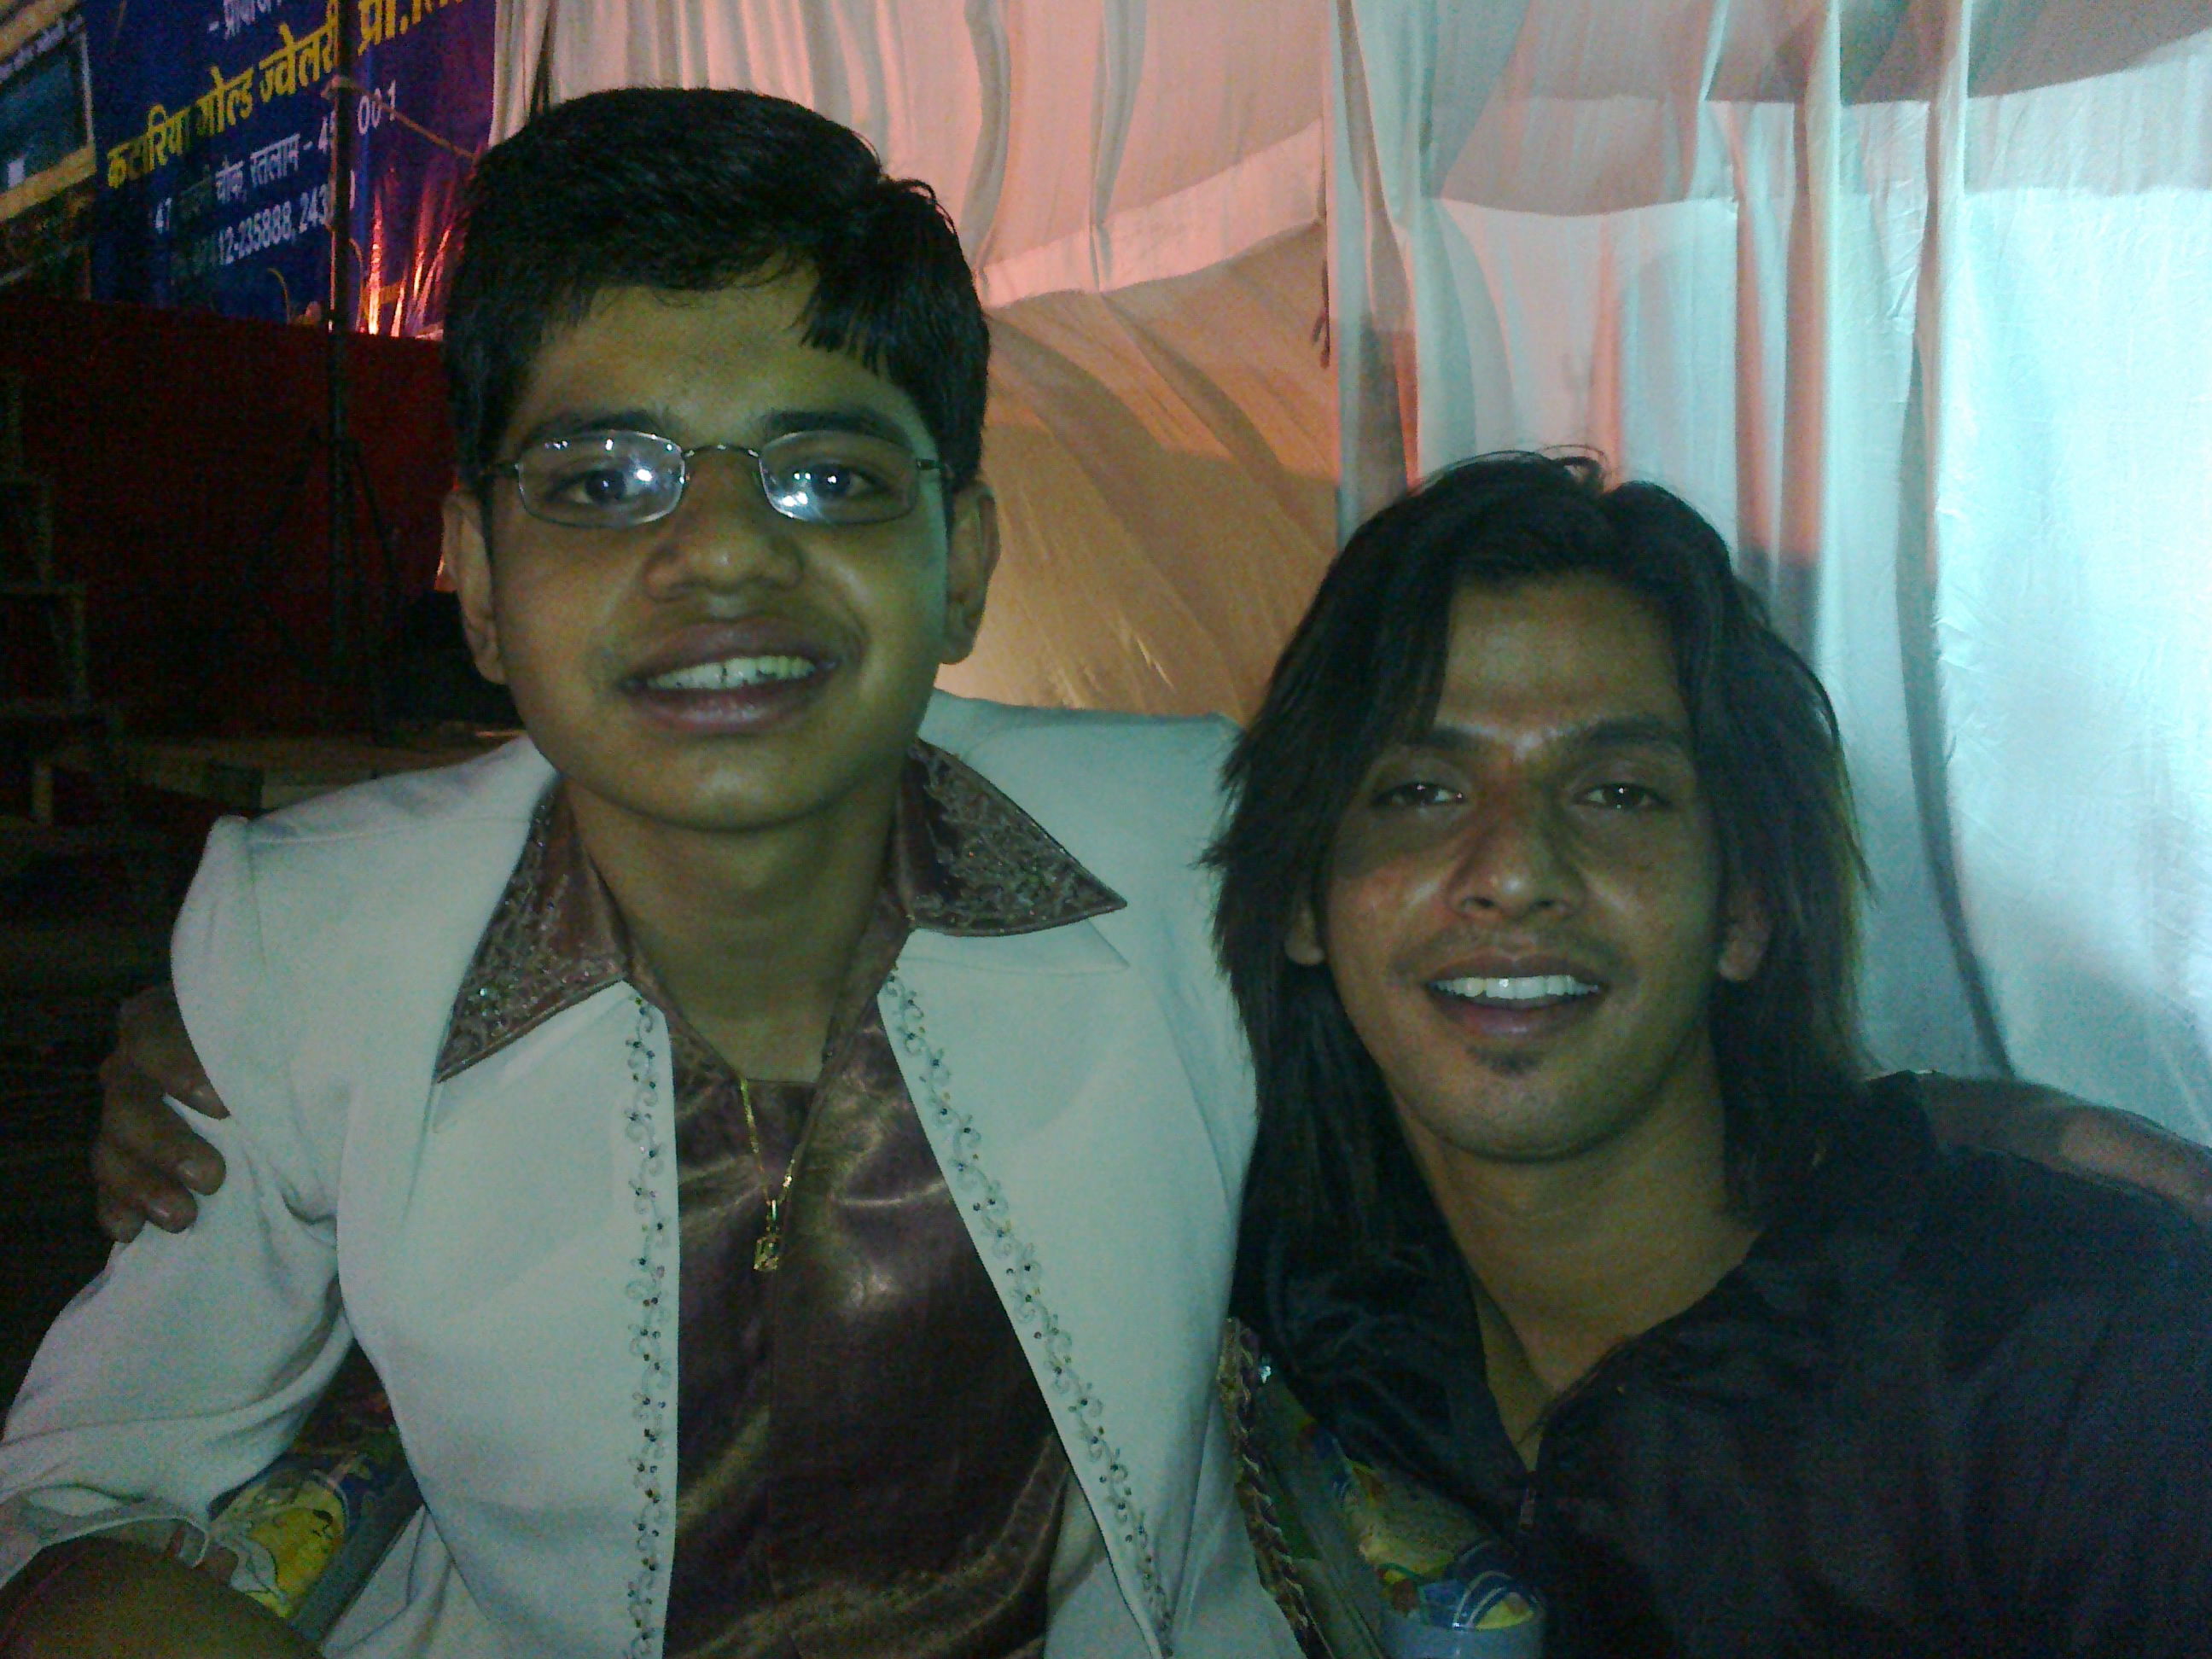 Bharat verma with Jay chaniyara (Laughter challenge contestant)